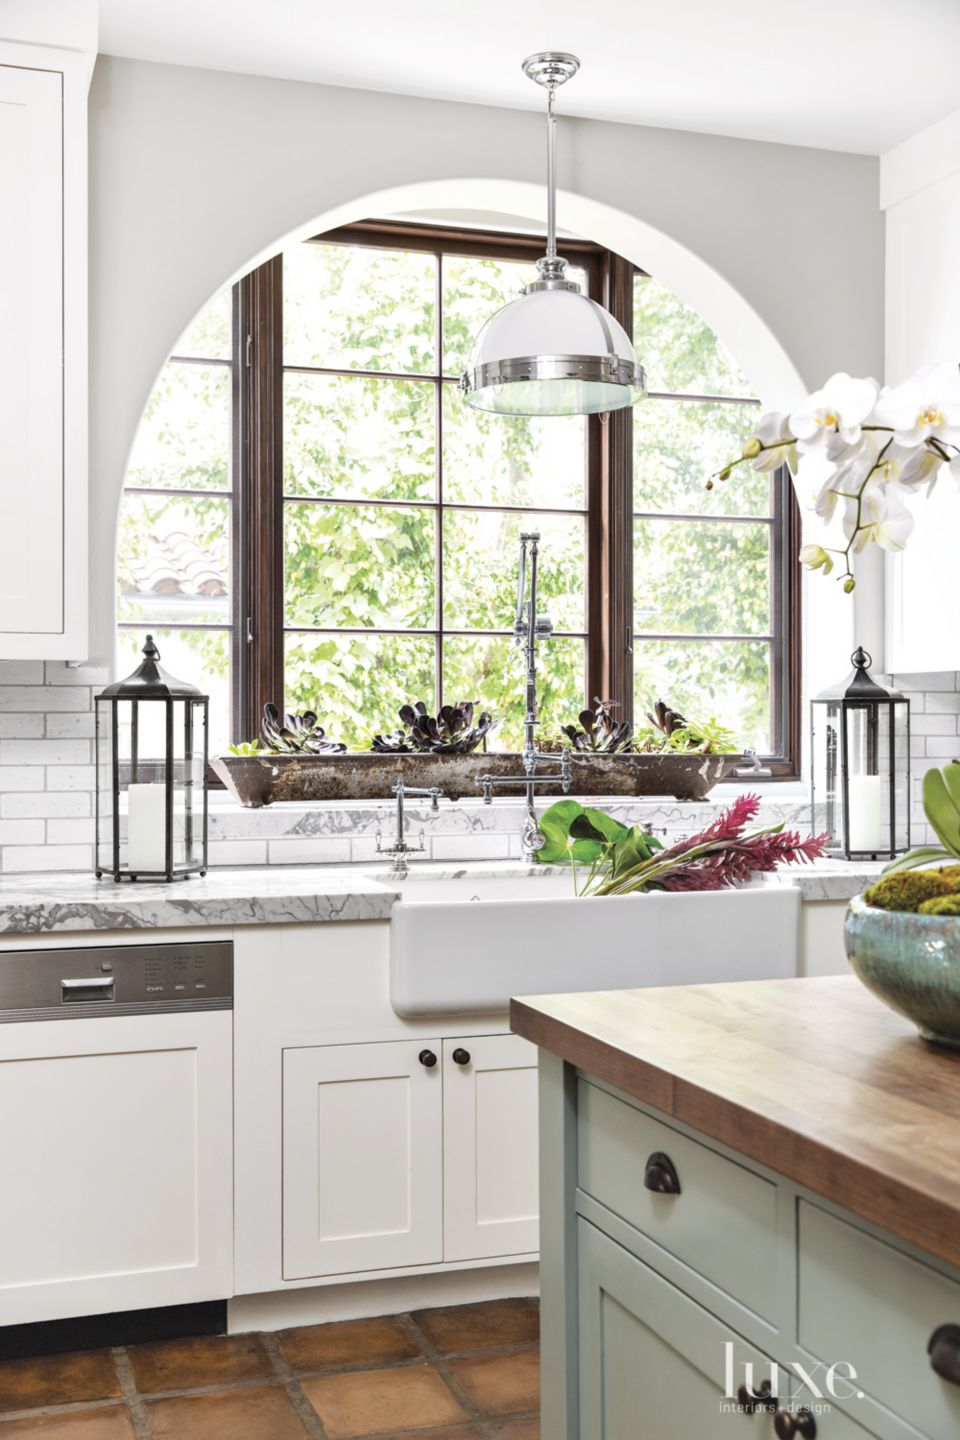 Spanish Colonial White Kitchen with Archways